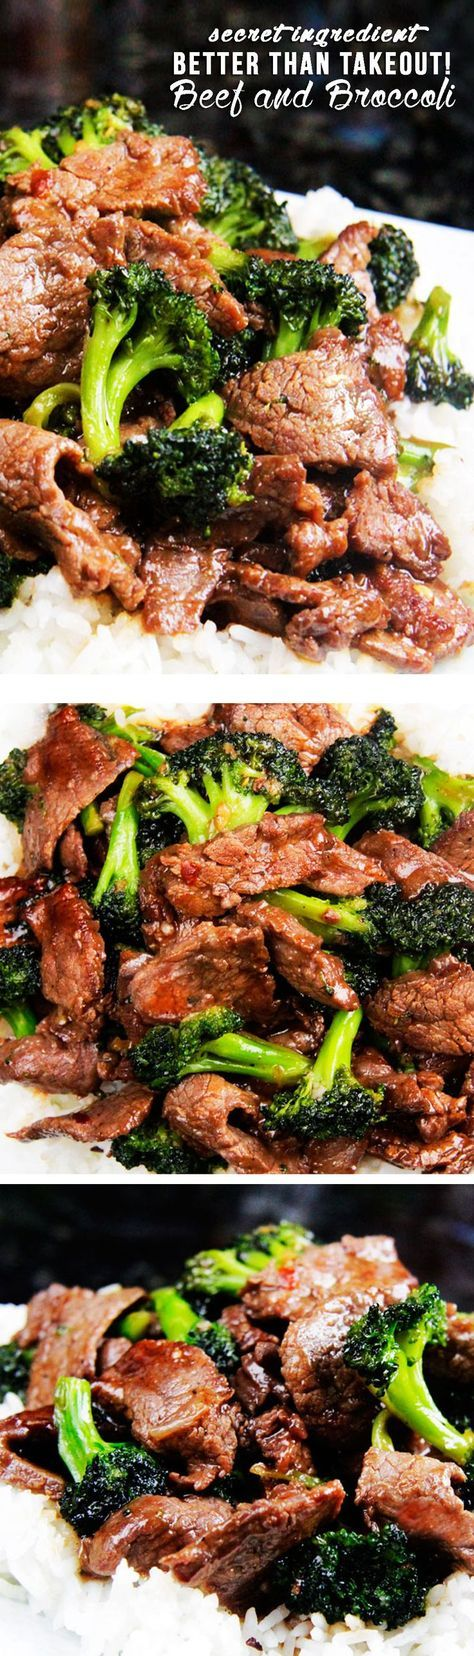 Tender slices of beef that are SO juicy, SO flavorful as they soak up every savory essence of the marinade and the rich, savory sauce. BEST I'VE EVER HAD! | Carlsbad Cravings